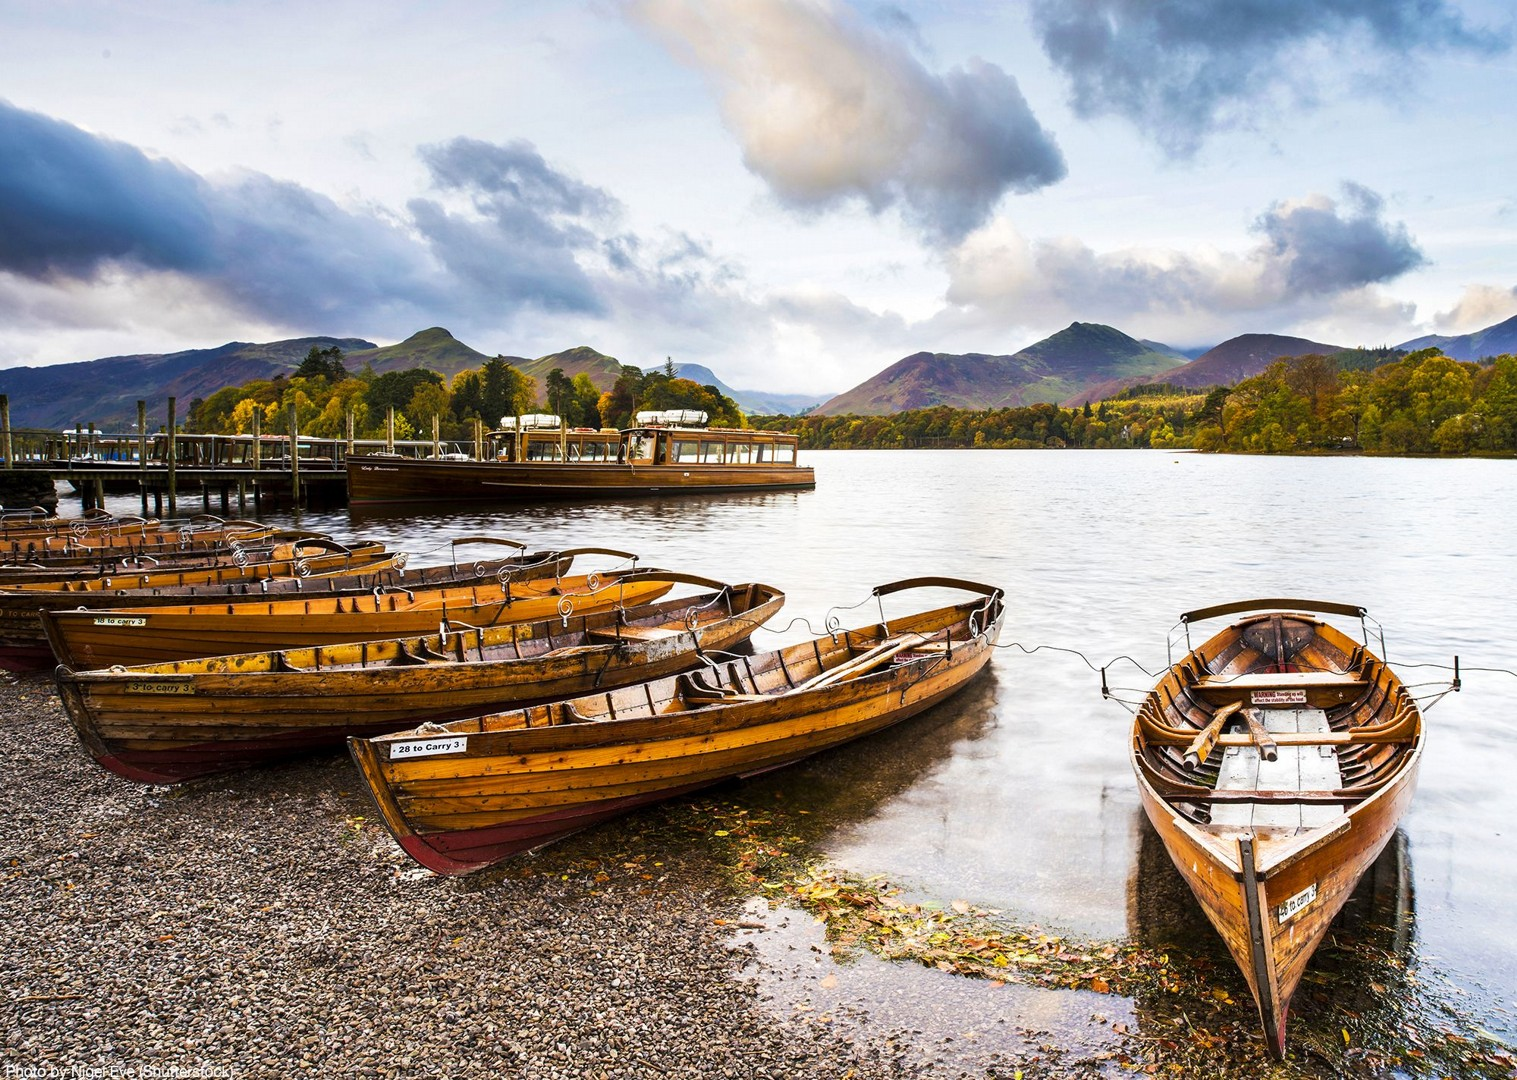 culture-local-boats-bikes-guided-leisure-tour-lake-district-derwent.jpg - UK - Lake District - Derwent Water - Guided Leisure Cycling Holiday - Leisure Cycling